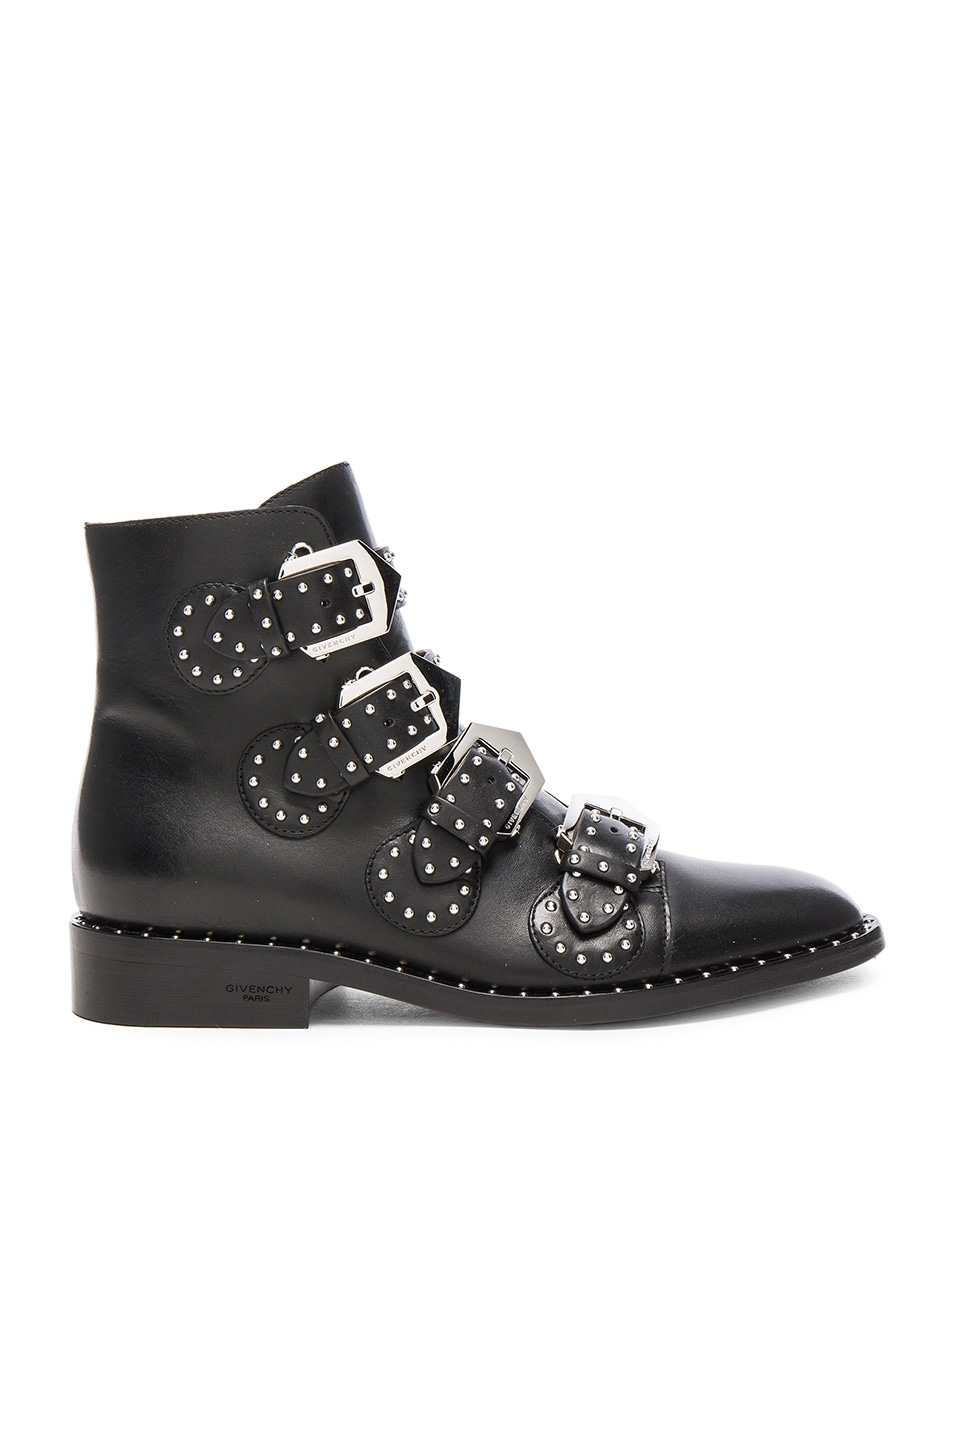 Image 1 of Givenchy Elegant Studded Leather Ankle Boots in Black